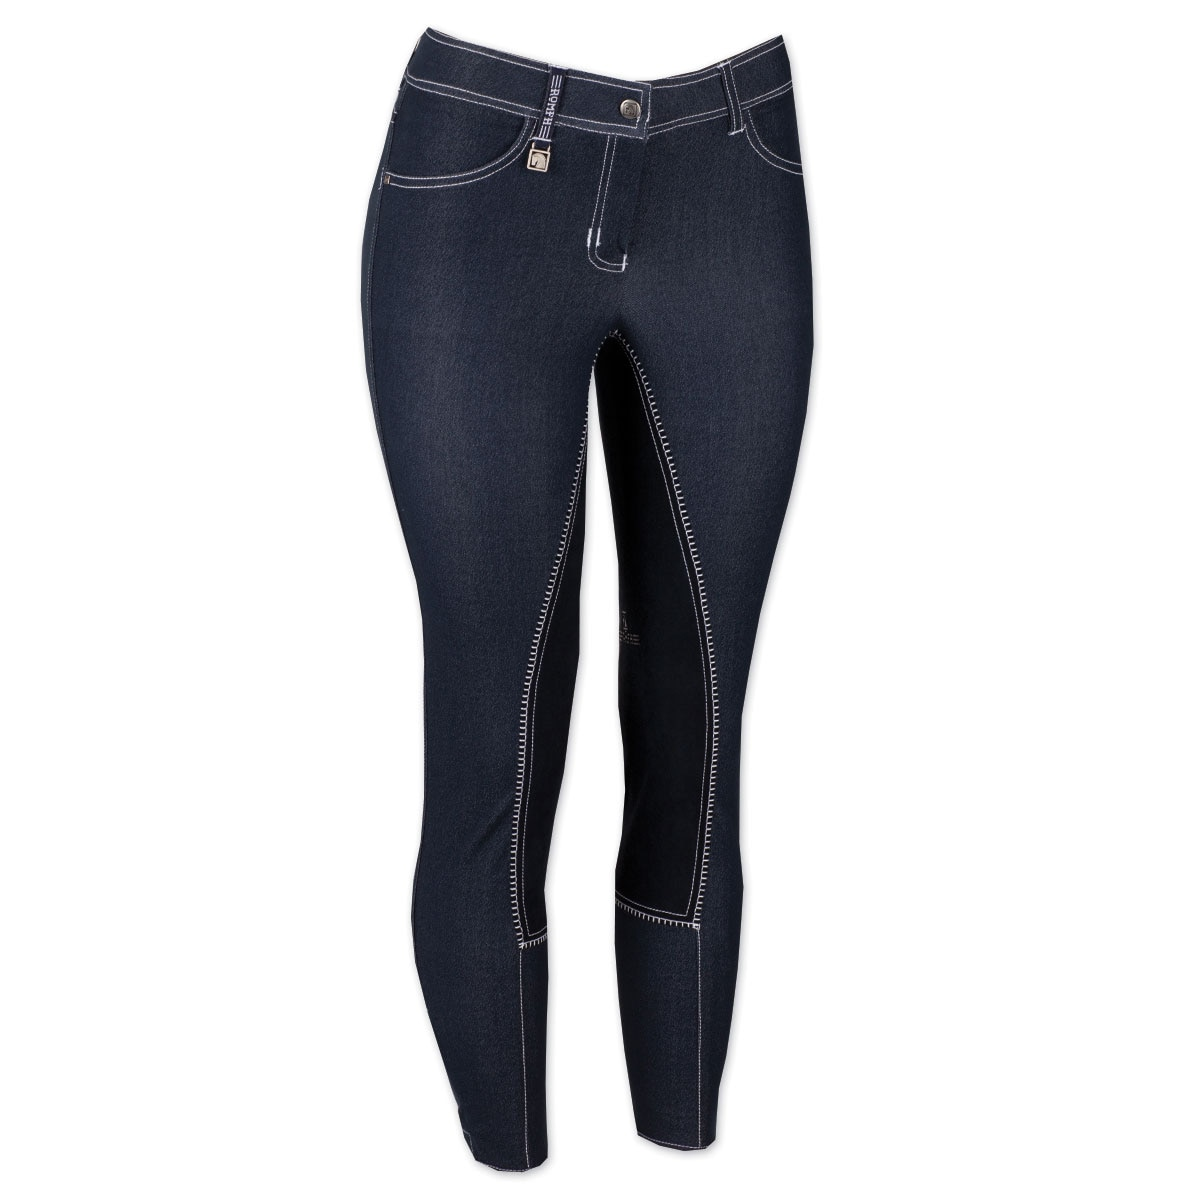 Romfh International Denim Full Seat Breech